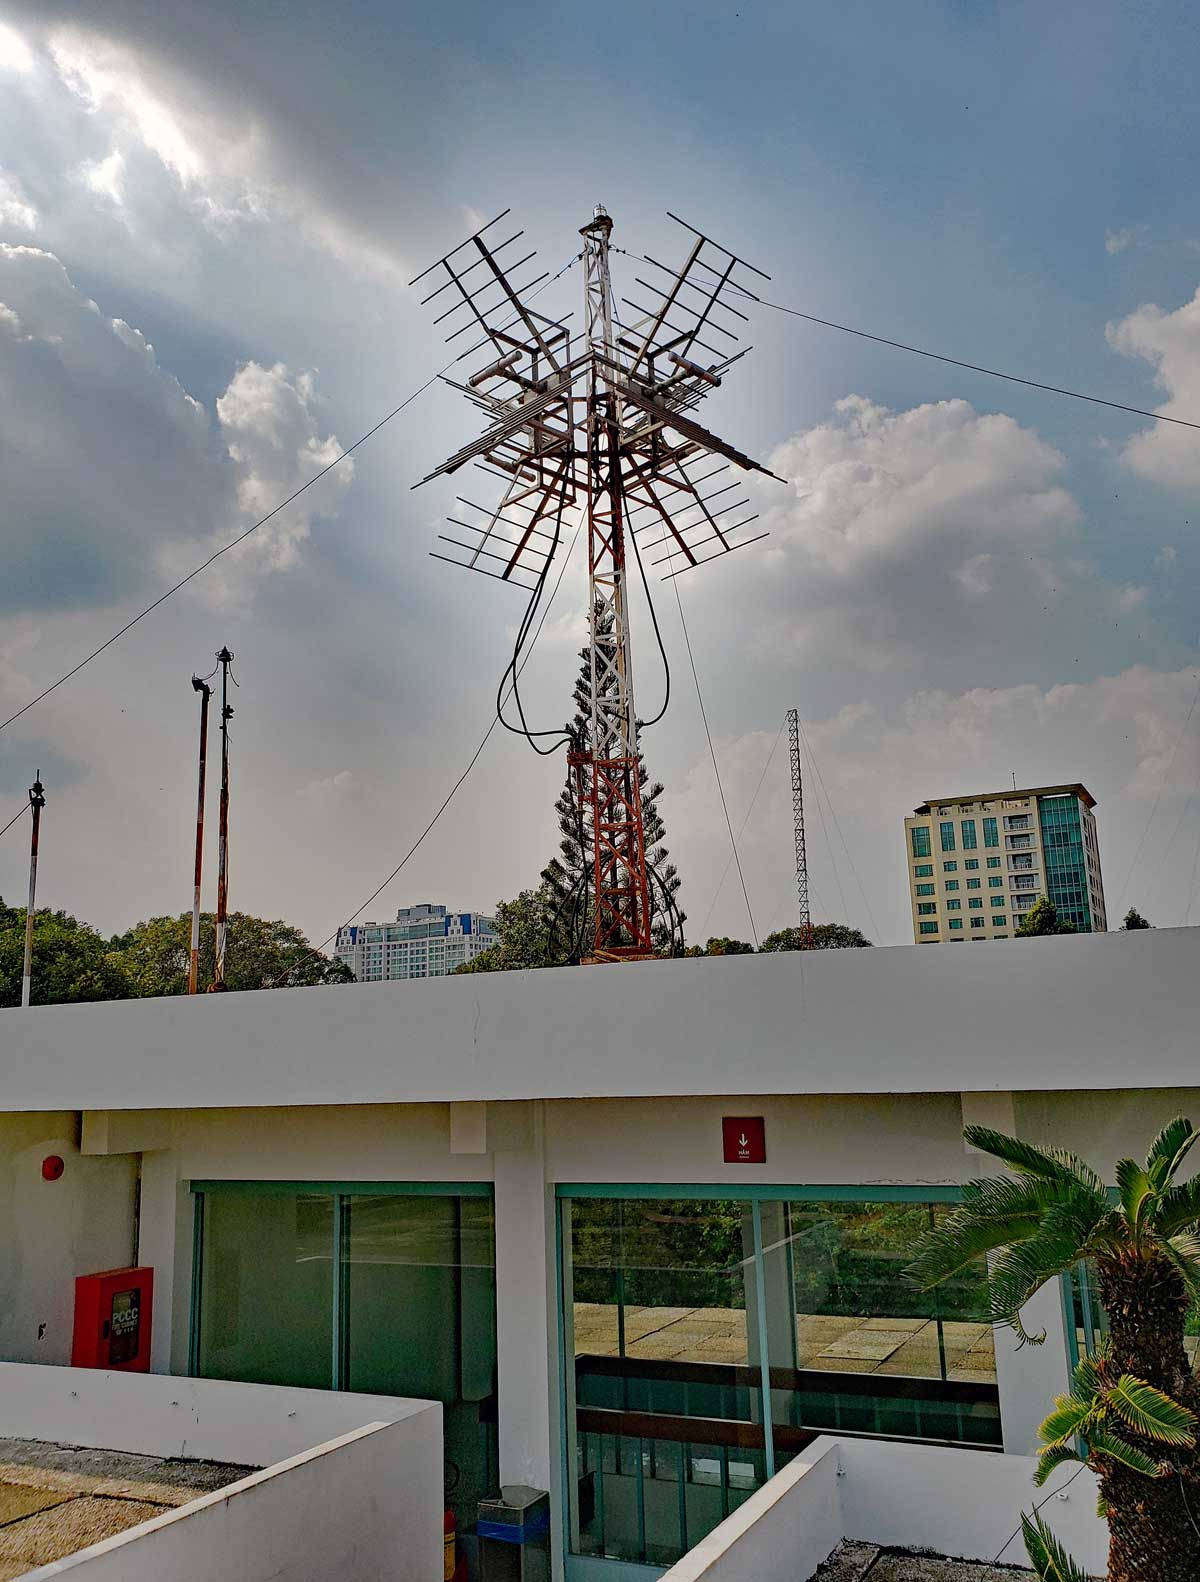 Communication equipment antennas on top of the roof.